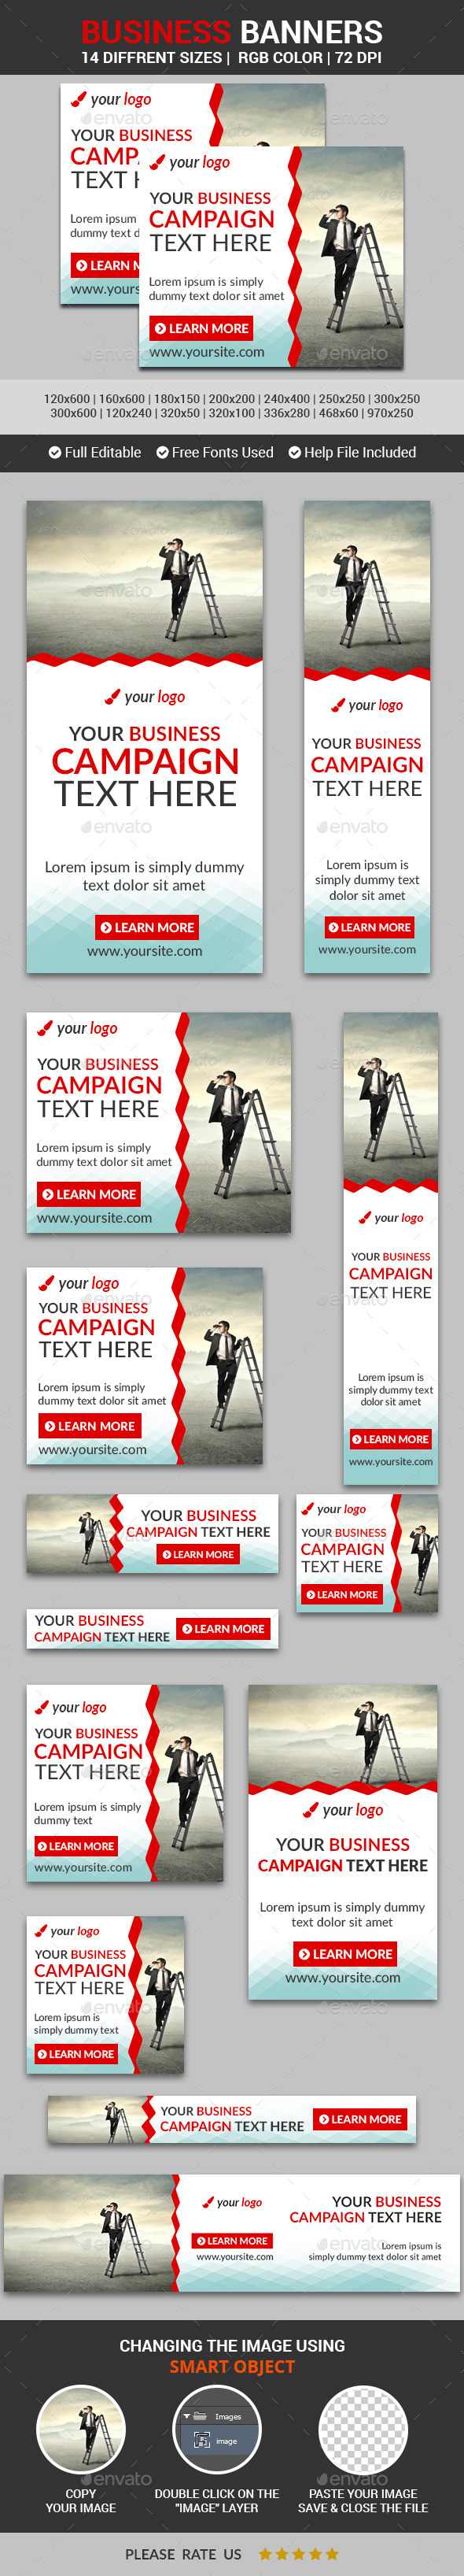 Business Banners v5 - Banners & Ads Web Elements